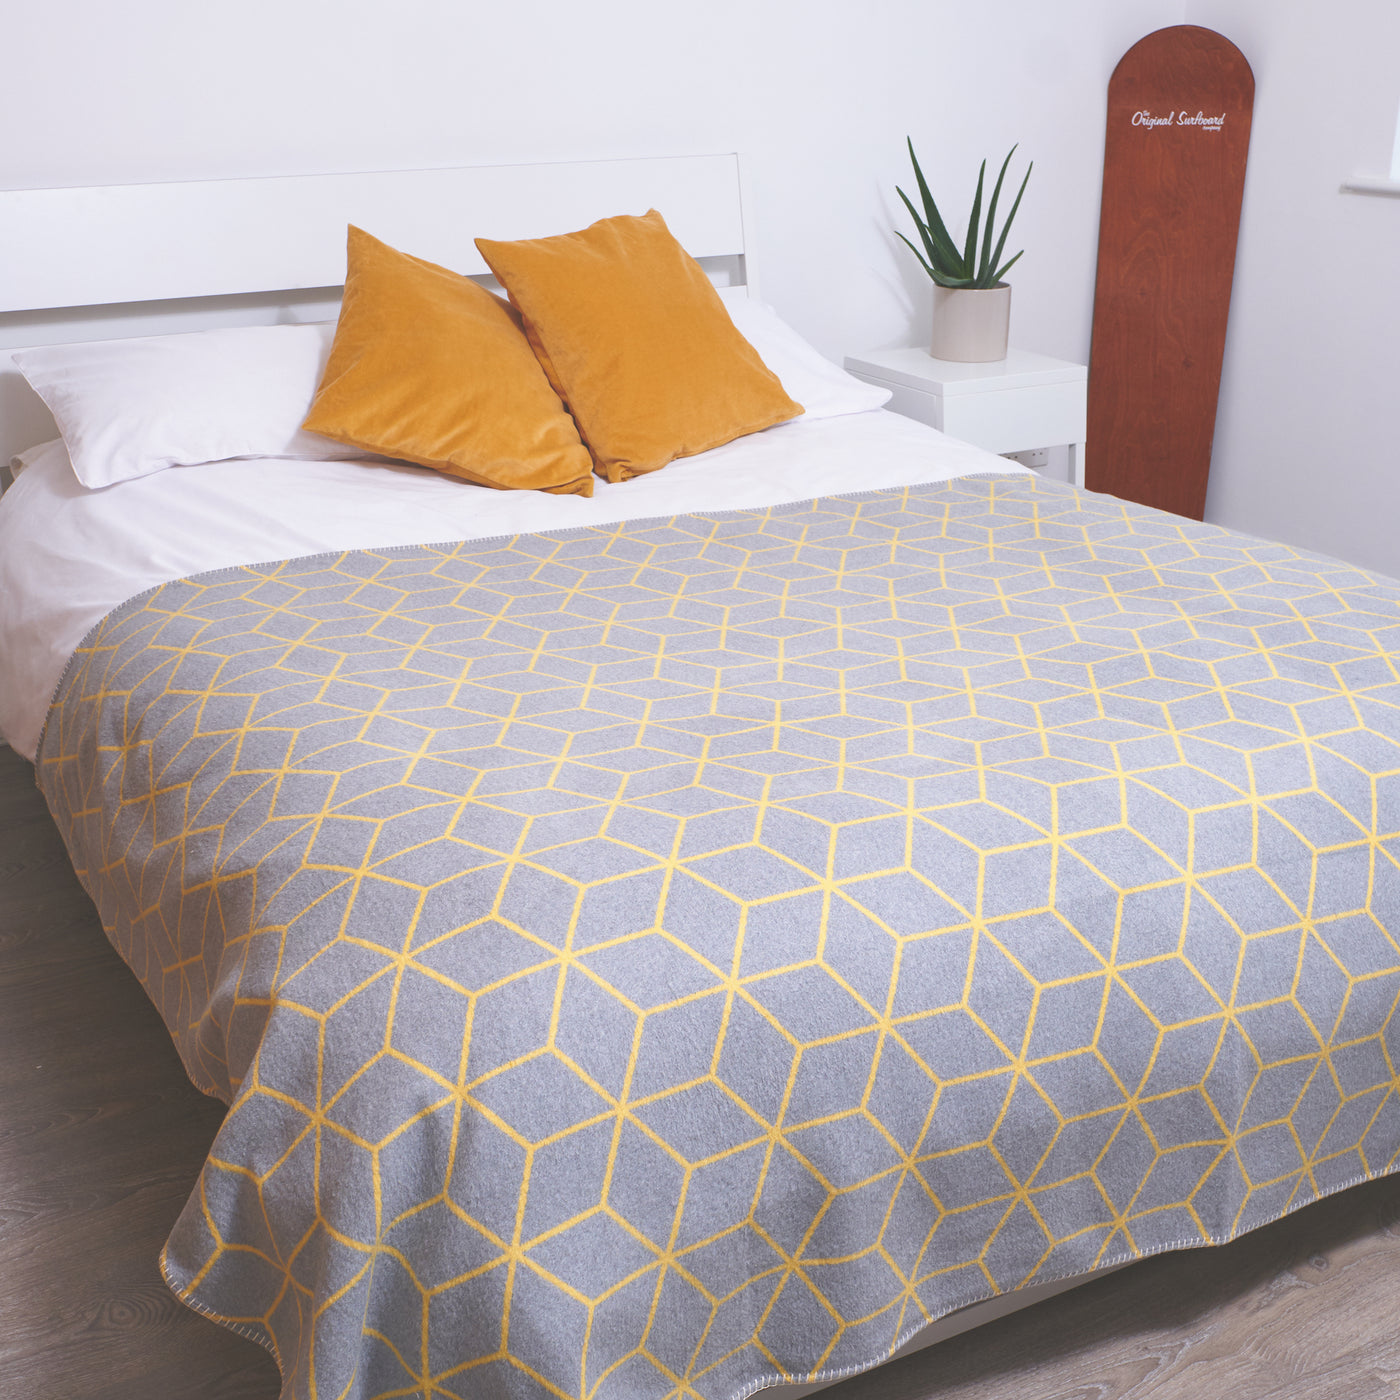 grey and yellow geometric blanket across a king size bed